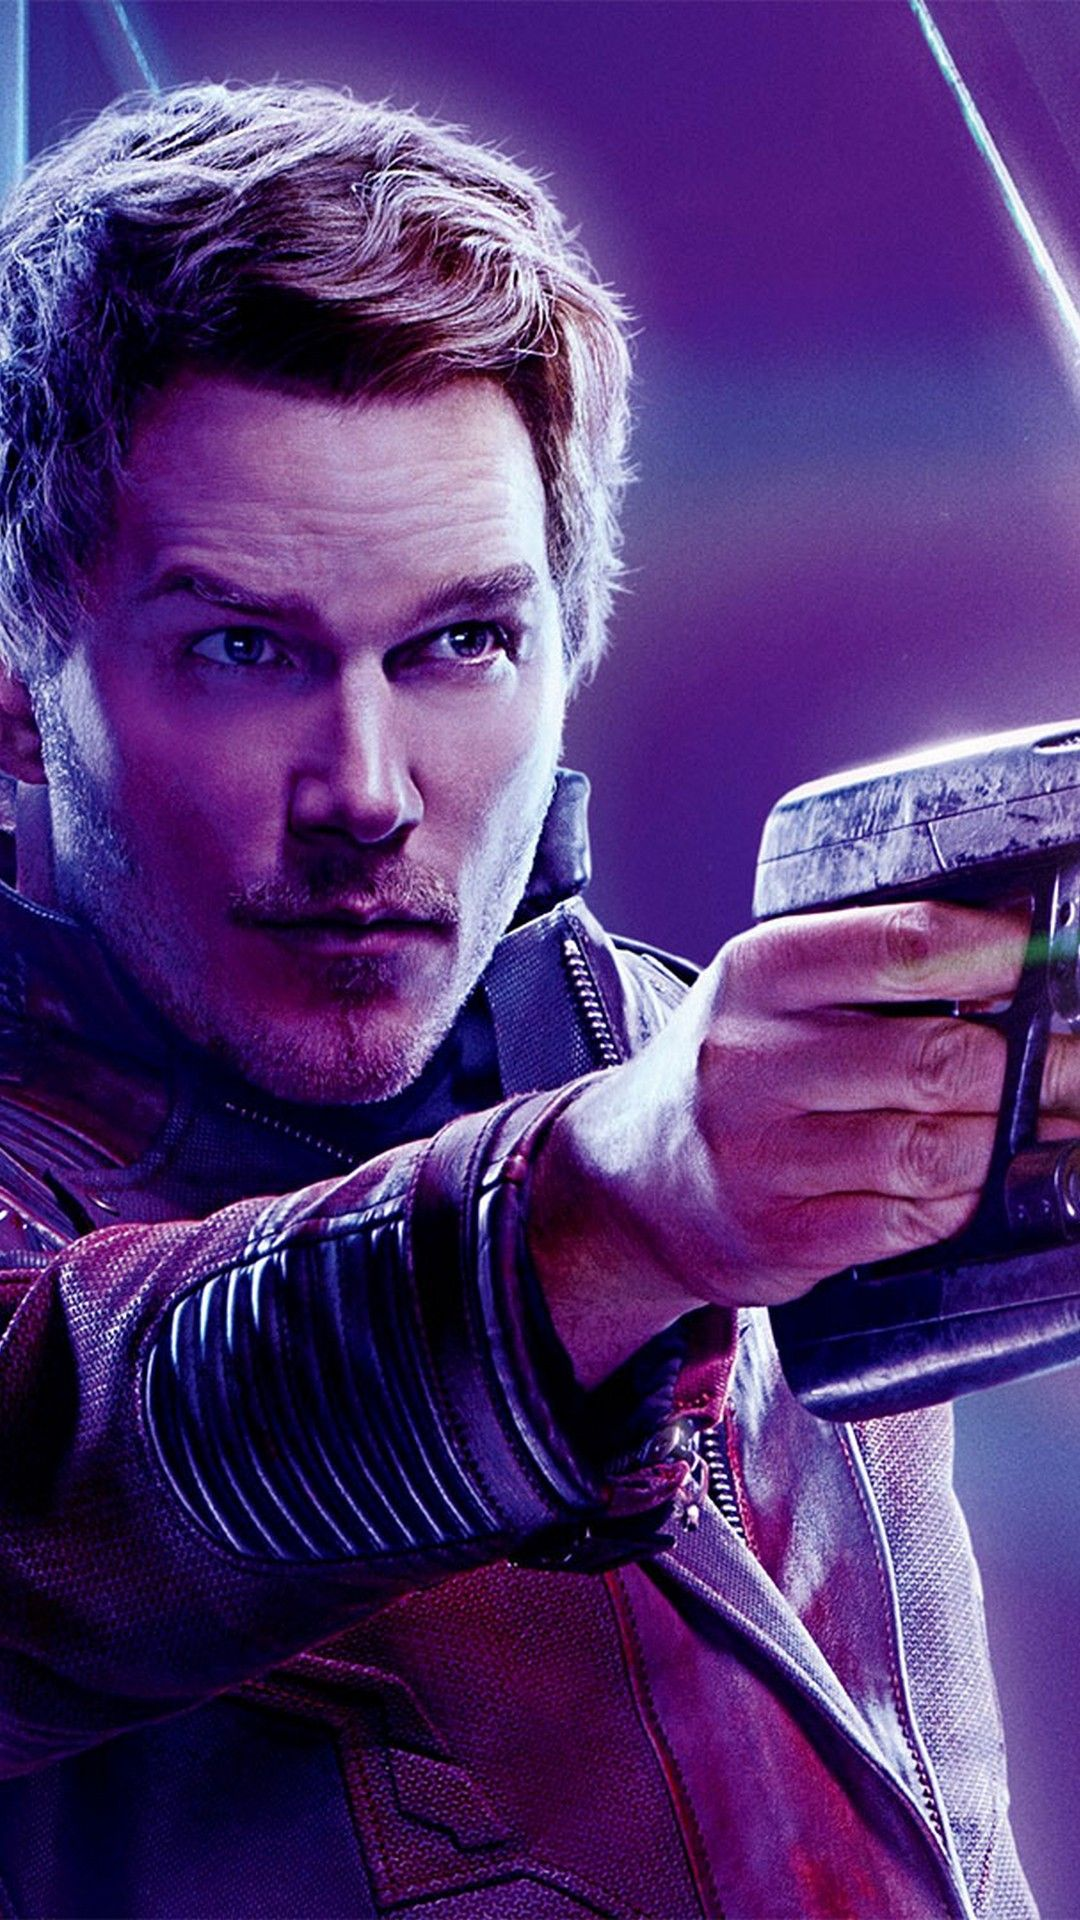 Star Lord Avengers Endgame Iphone Wallpaper Star Lord Iphone